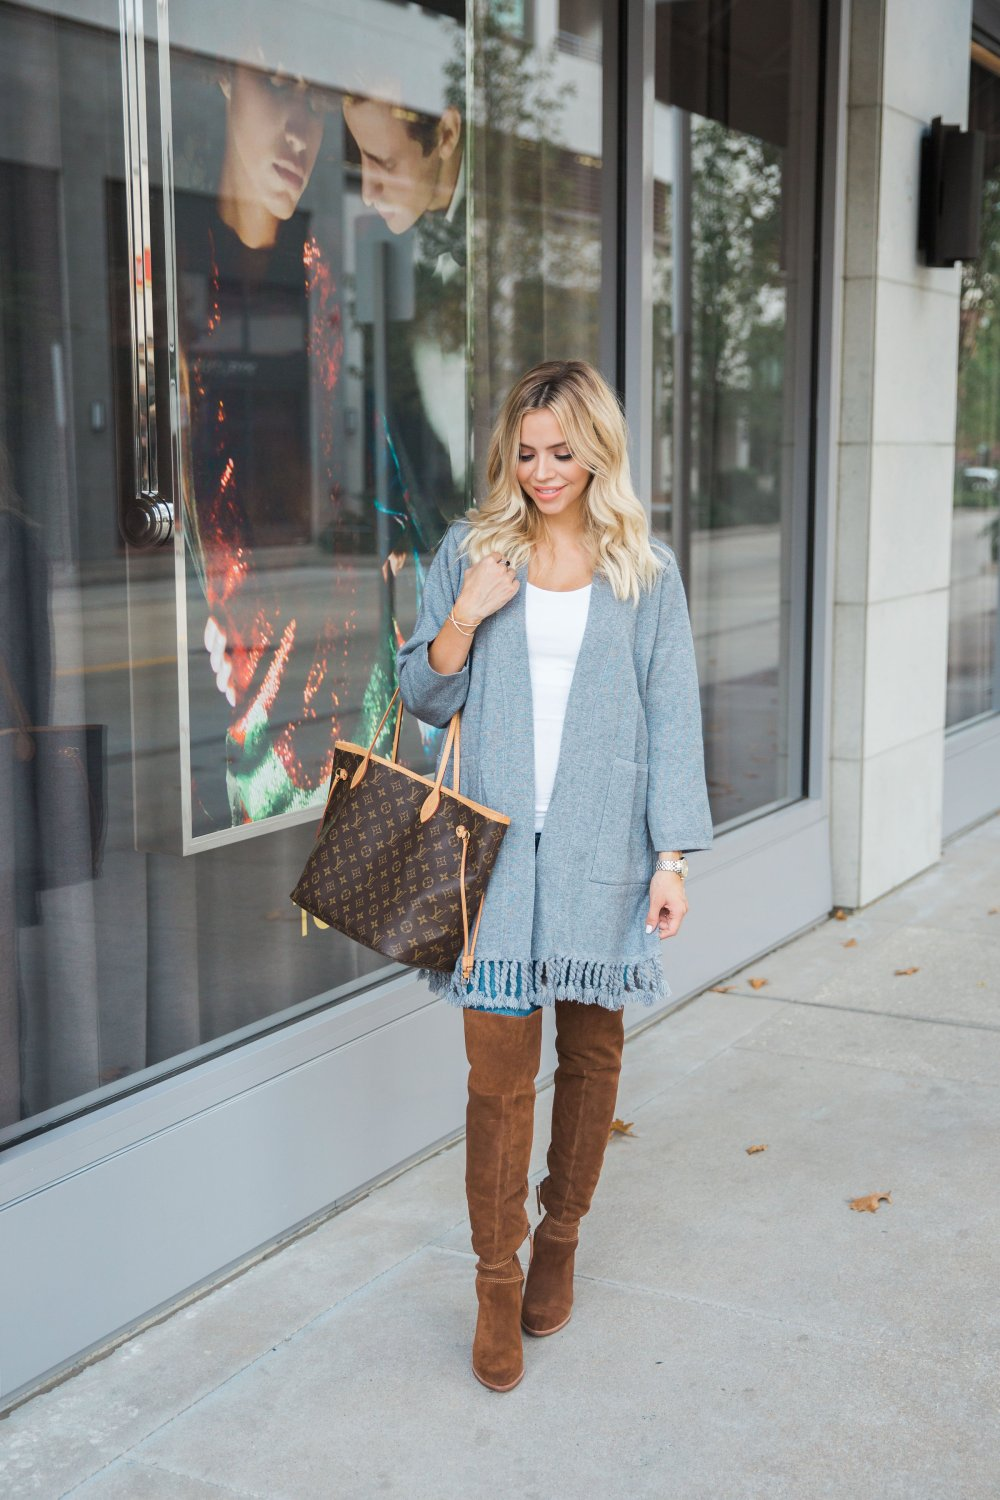 A comfortable and stylish maternity look! I recently ordered these maternity jeans and I am hooked! The fringe cardigan is so soft!